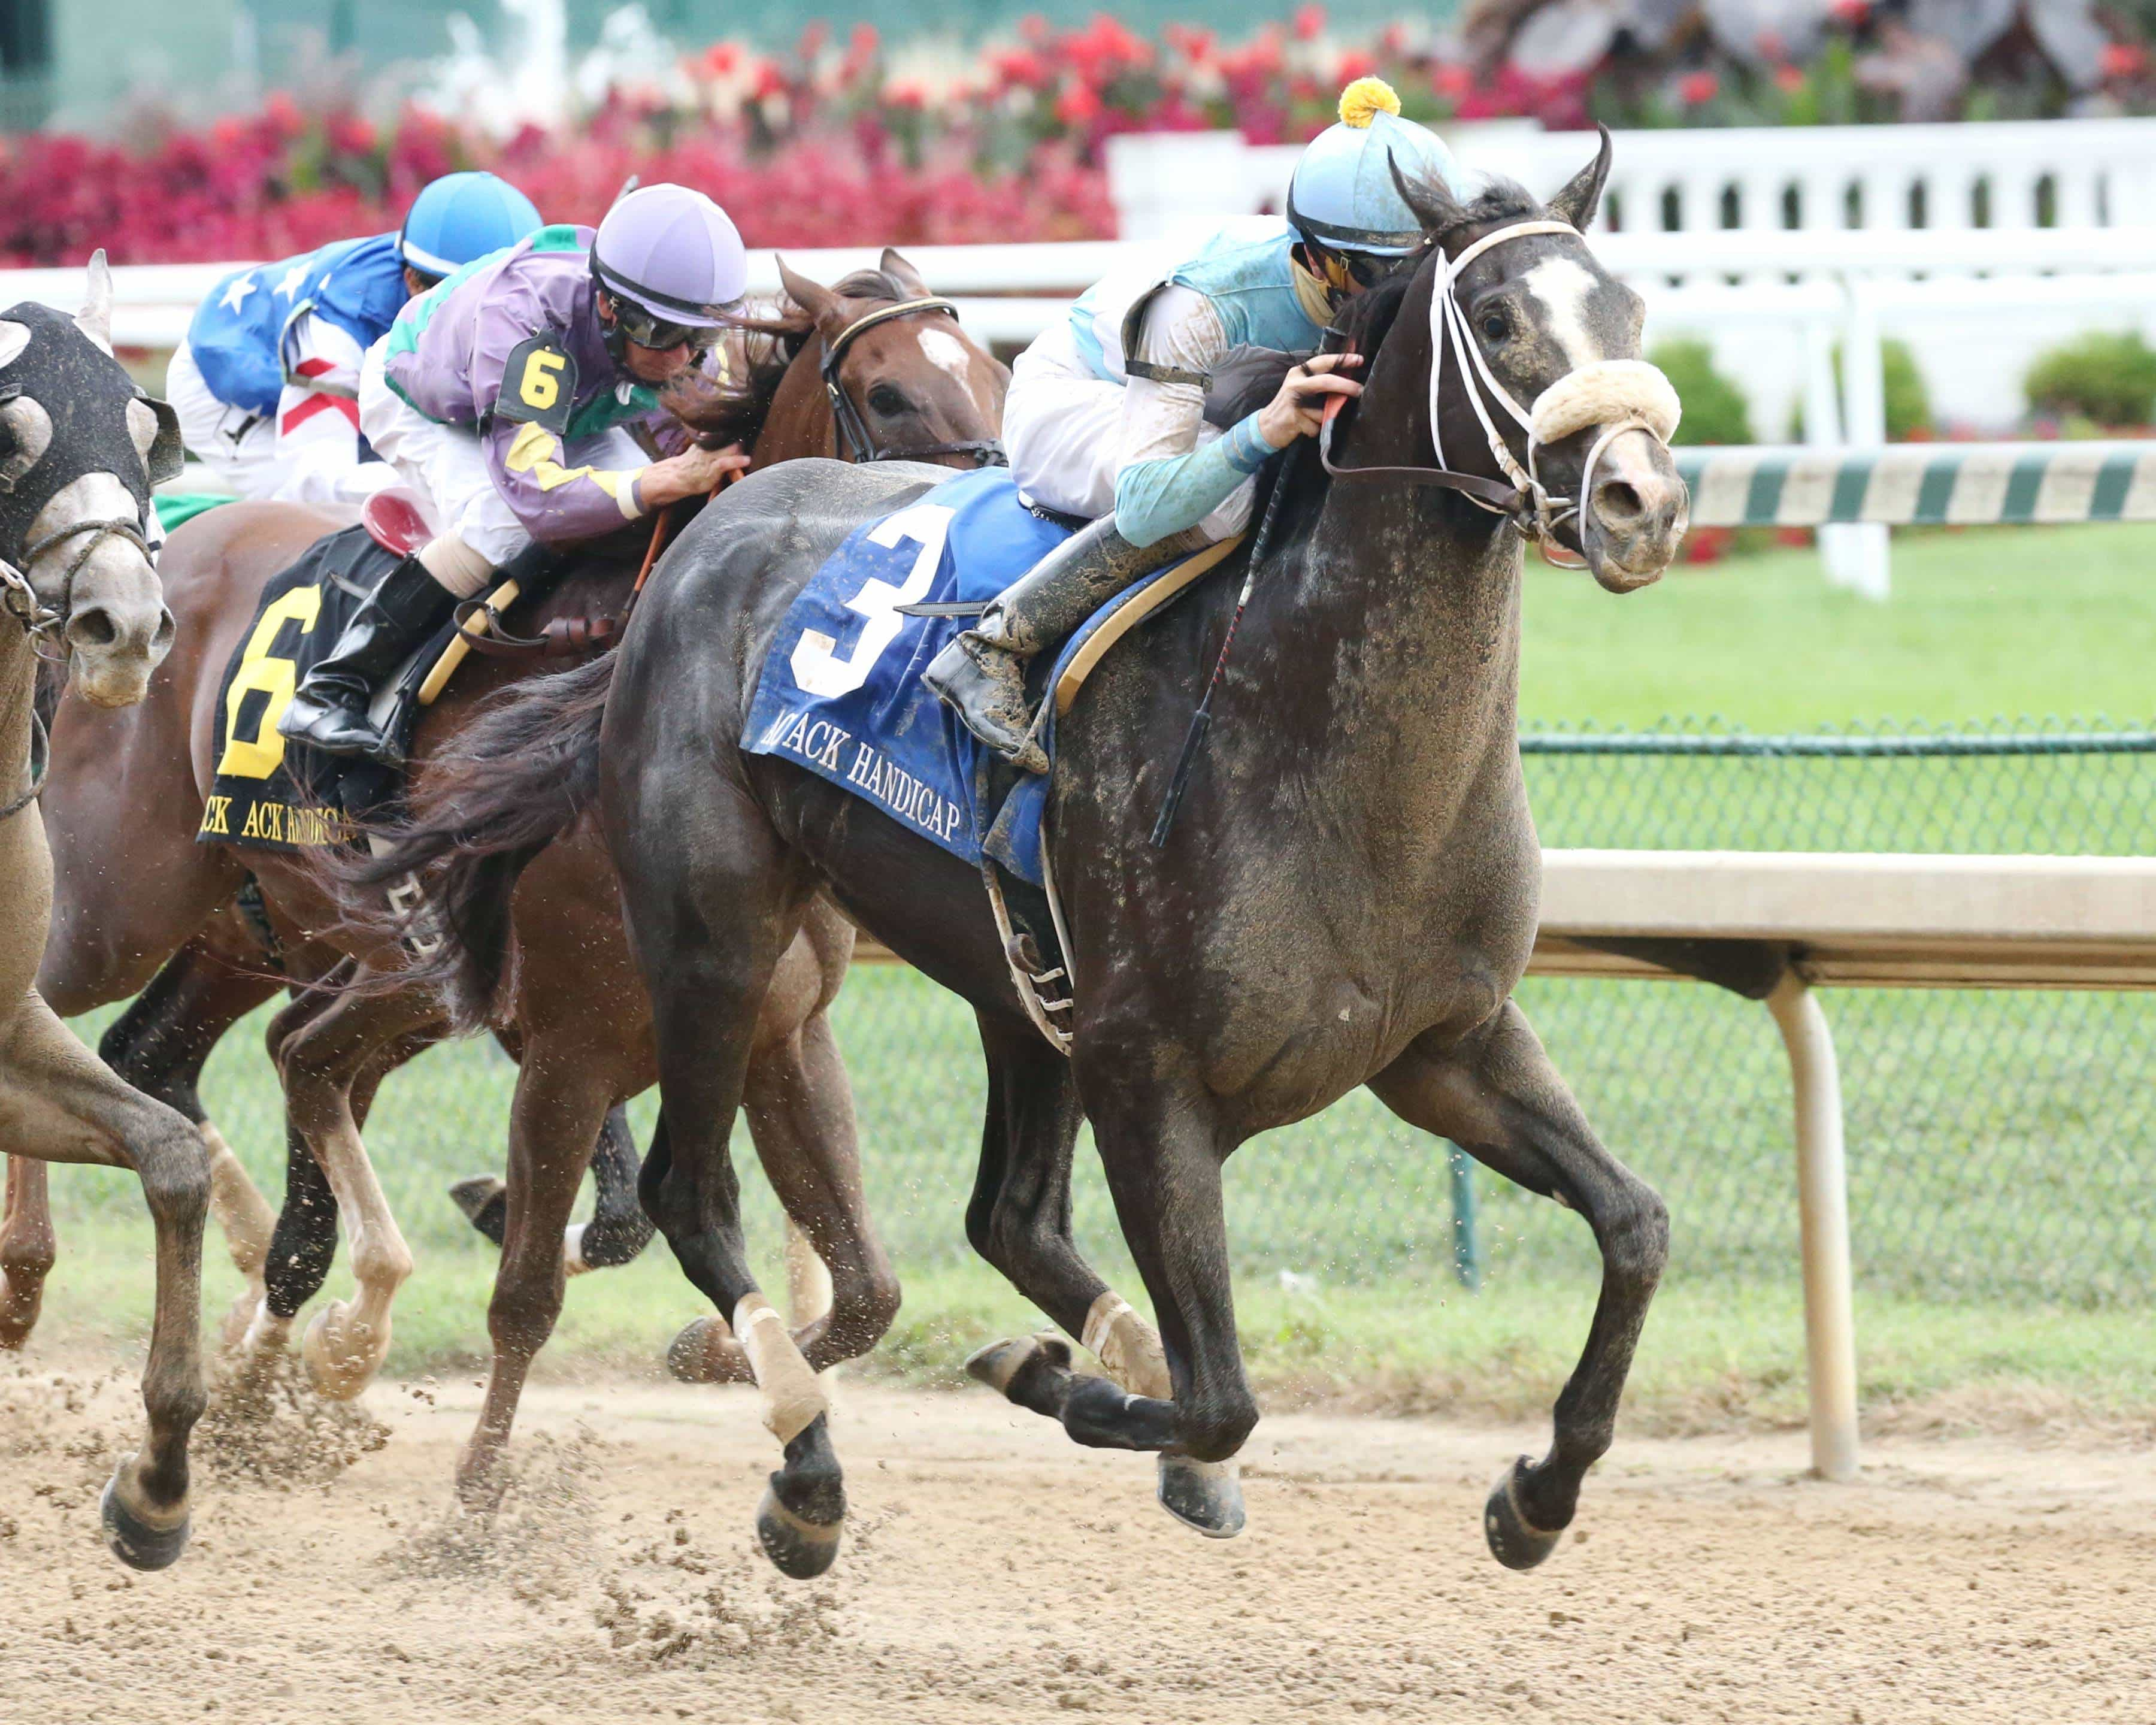 Tom's Ready - Ack Ack - 10-01-16-r09-cd-fin-2 - Credit: Churchill Downs/Coady Photography